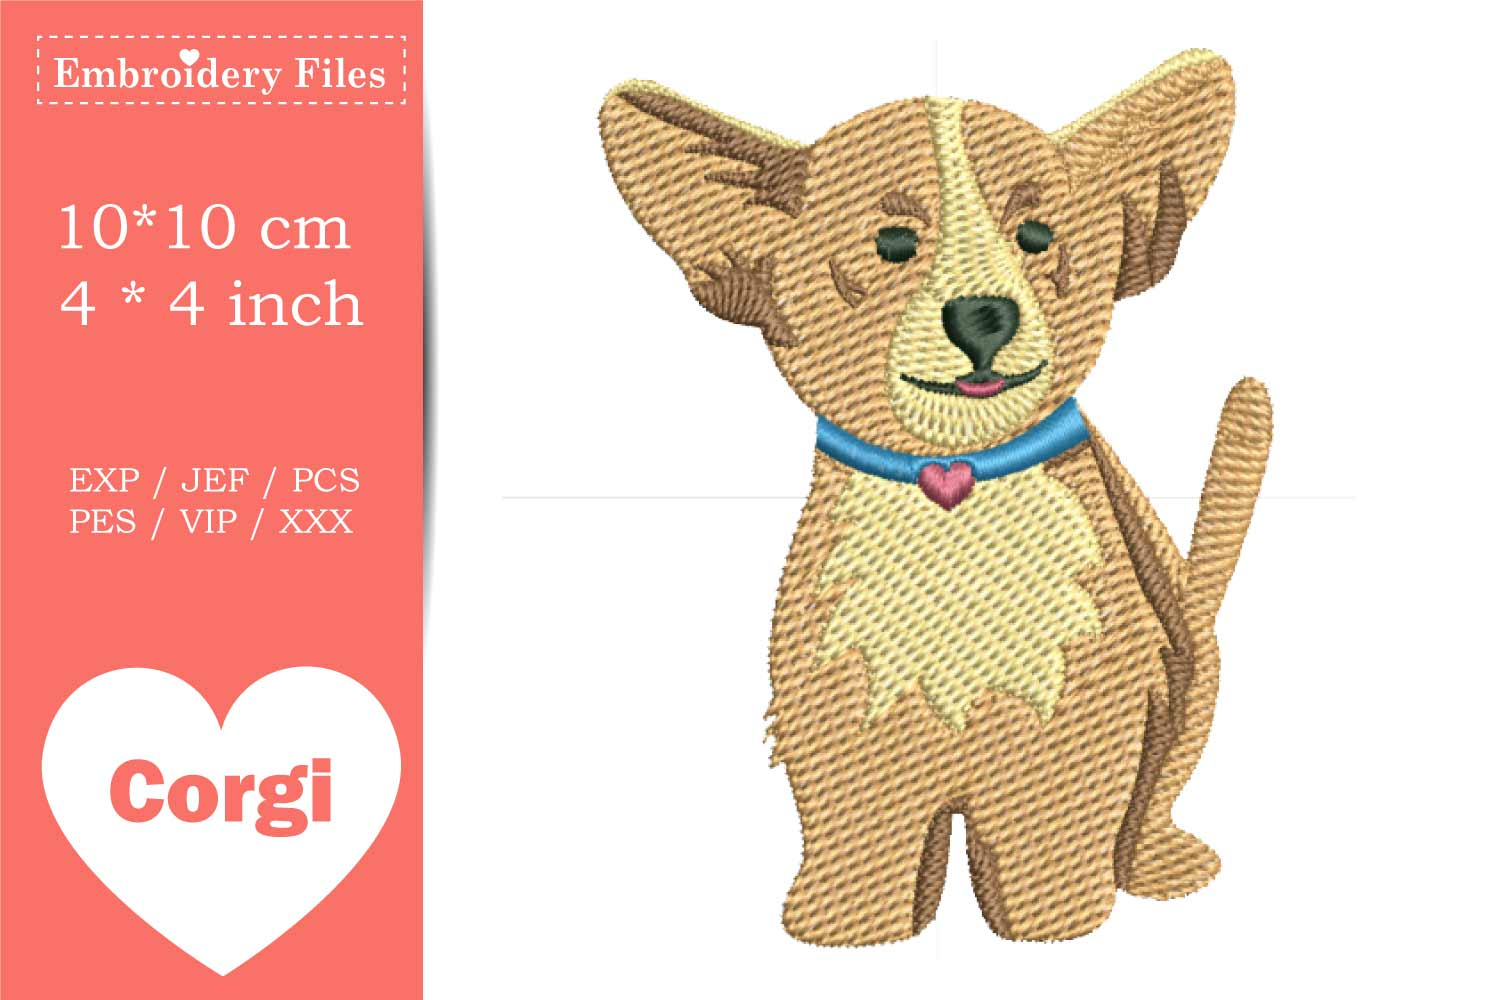 Dogs - Mini Bundle - Embroidery Files example image 6